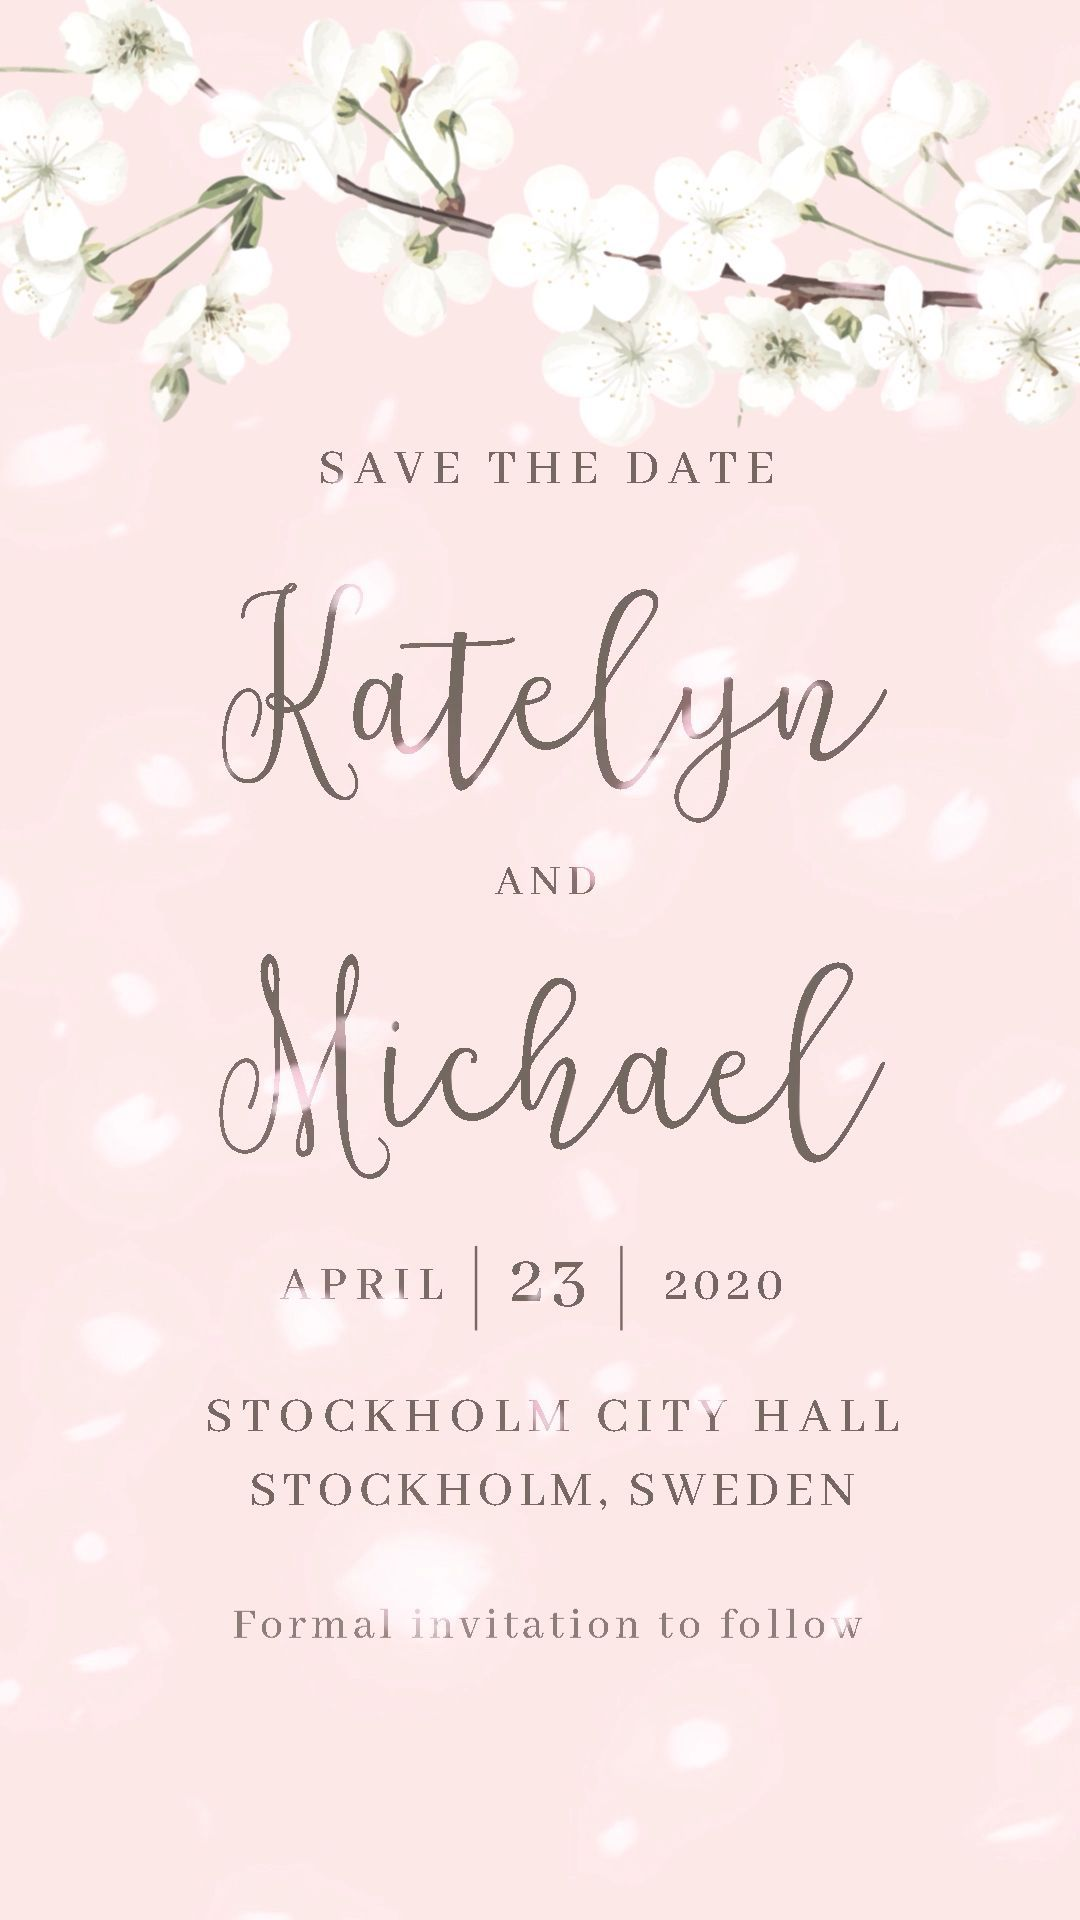 Logo Discover Cherry Blossoms Invitation Save The Date Ideas Save The Dat Electronic Wedding Invitations Digital Wedding Invitations Disney Wedding Invitations